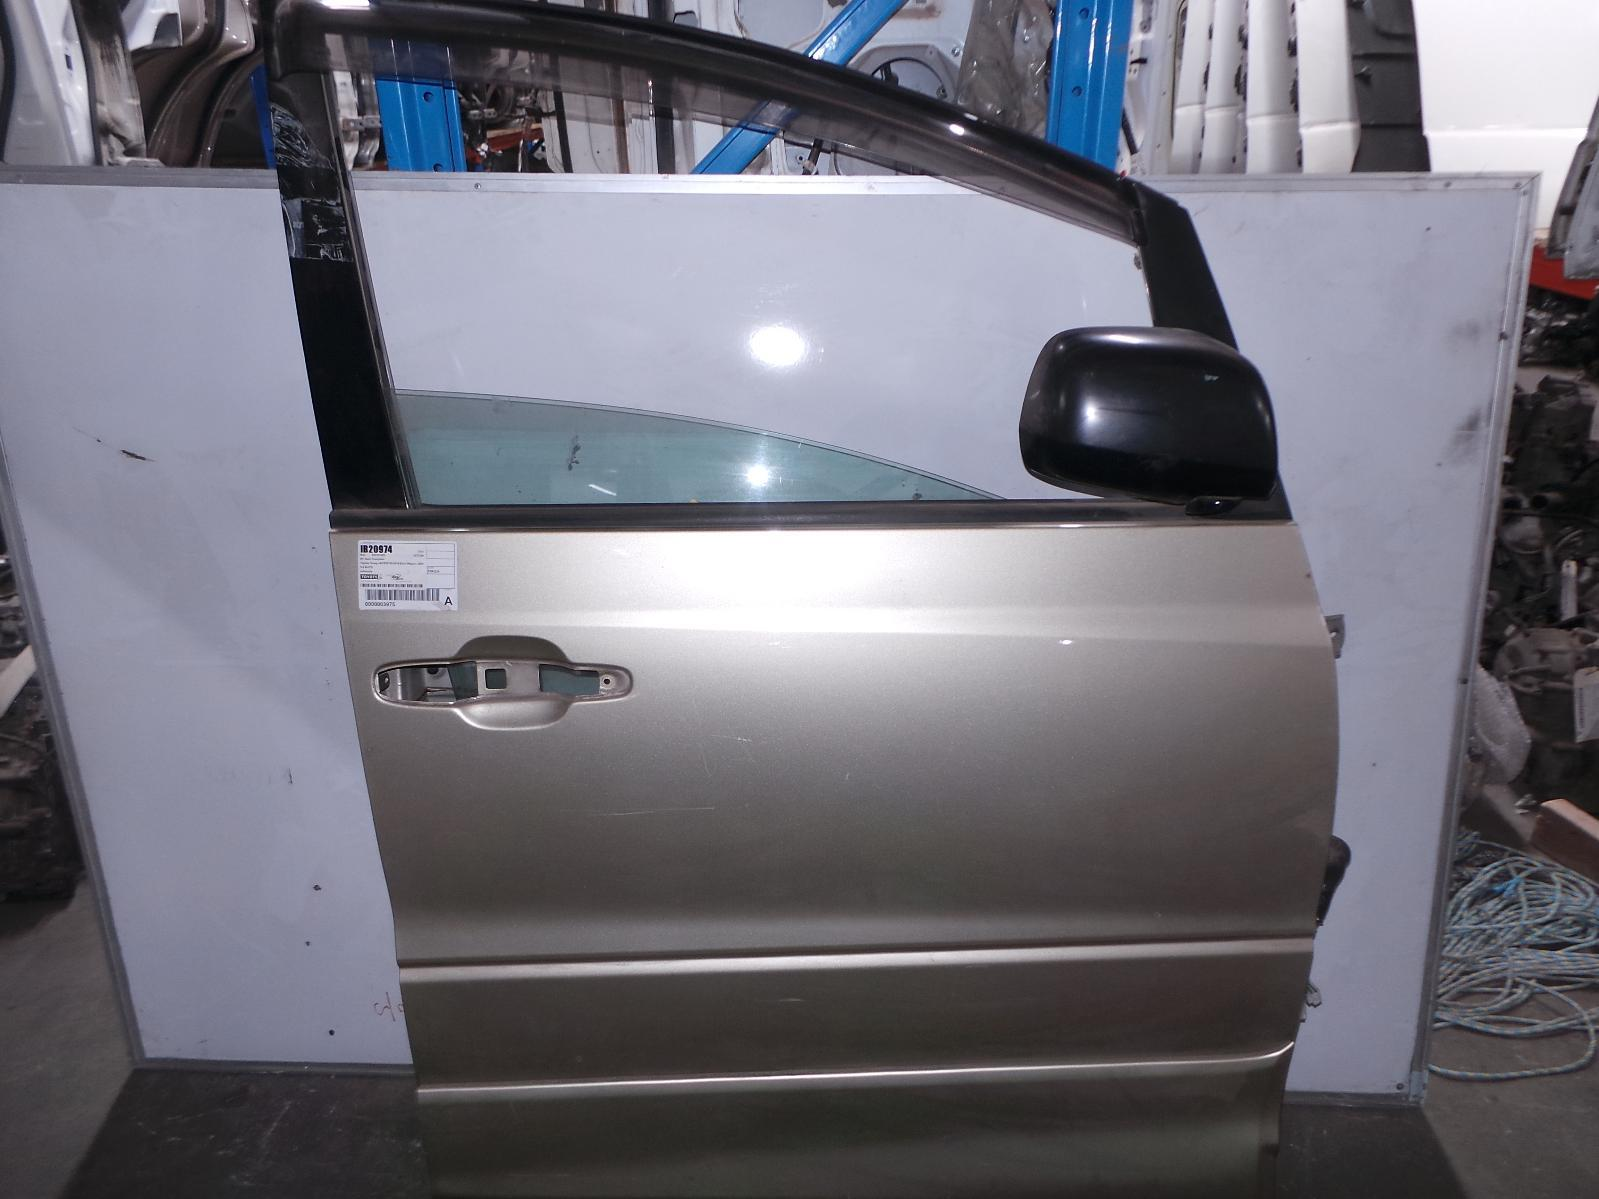 TOYOTA ESTIMA, Right Front Door, XR30/XR40, AERAS TYPE (W/ MOULD HOLES), 00-06 (IMPORT)